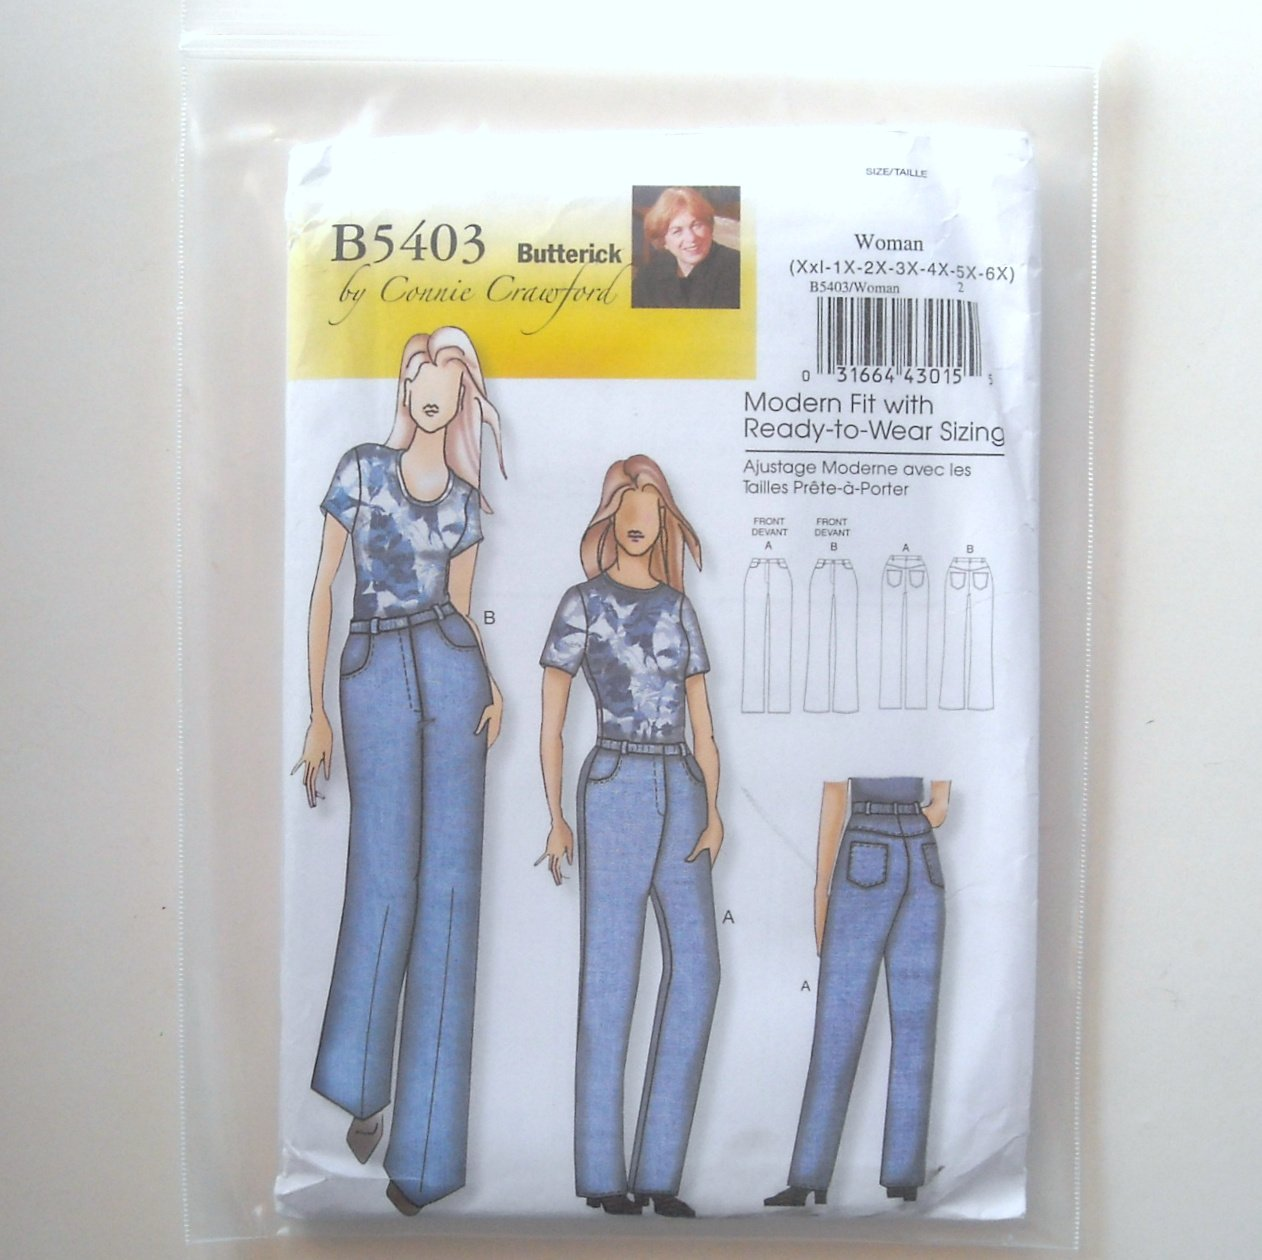 Butterick Pattern B5403 Connie Crawford Size XXL - 6X Womens Jeans